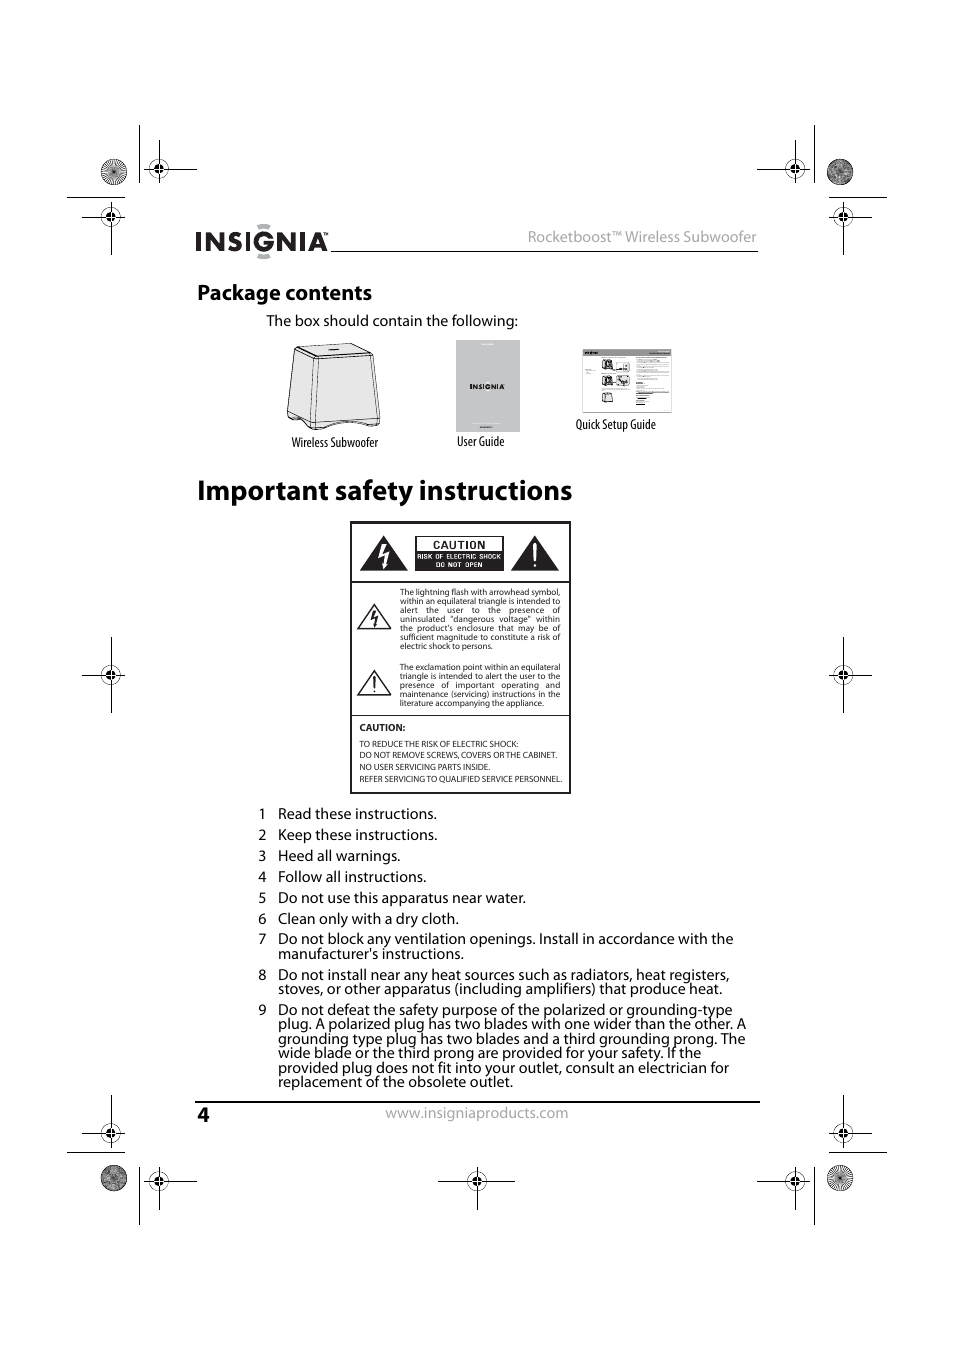 Package contents, Important safety instructions | Insignia NS-RSW211 User  Manual | Page 4